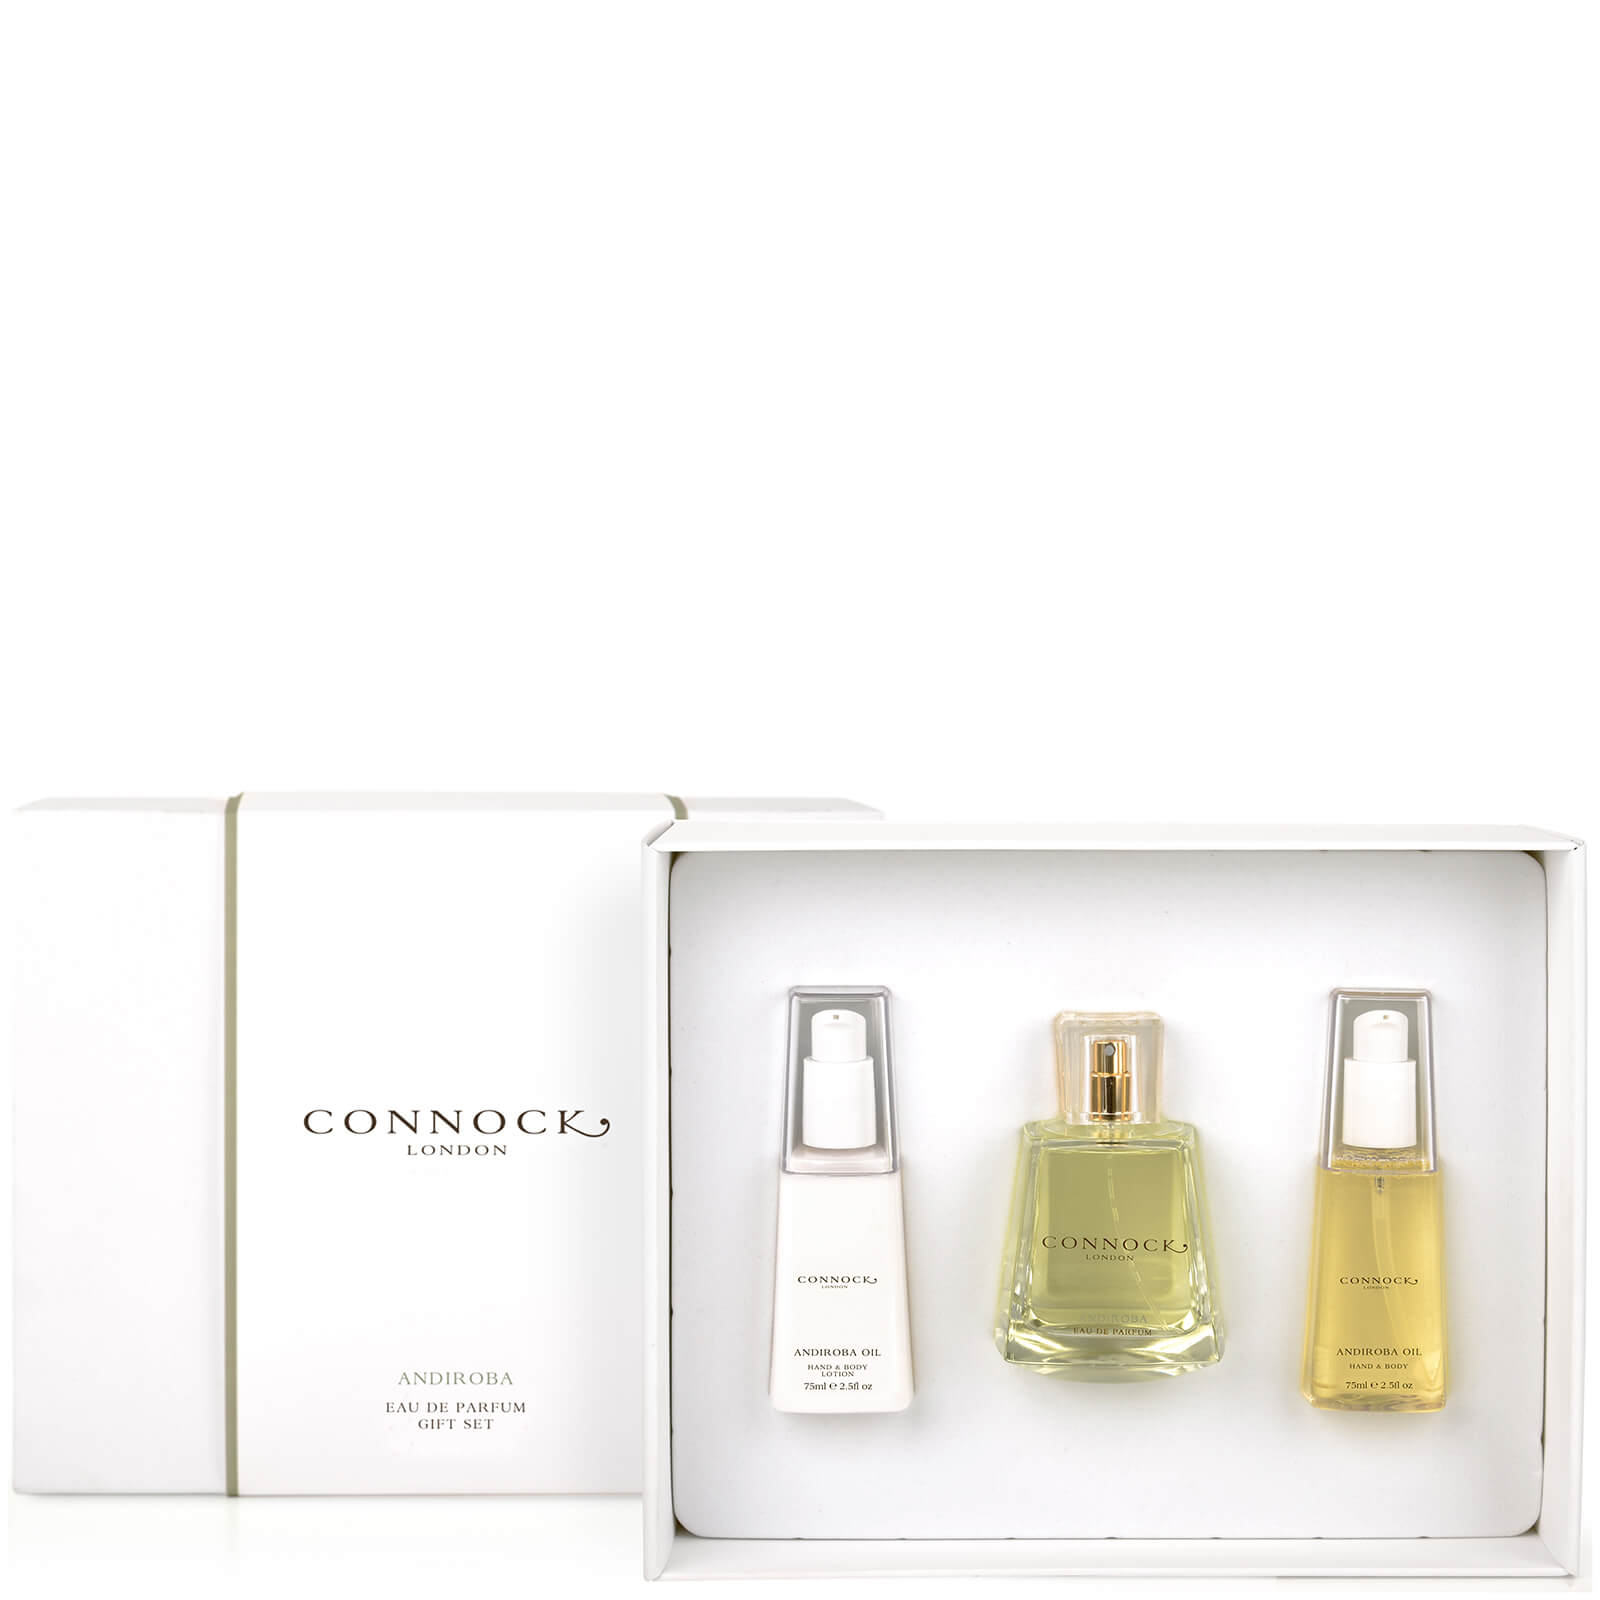 Connock London Andiroba Eau De Parfum Gift Set Free Shipping